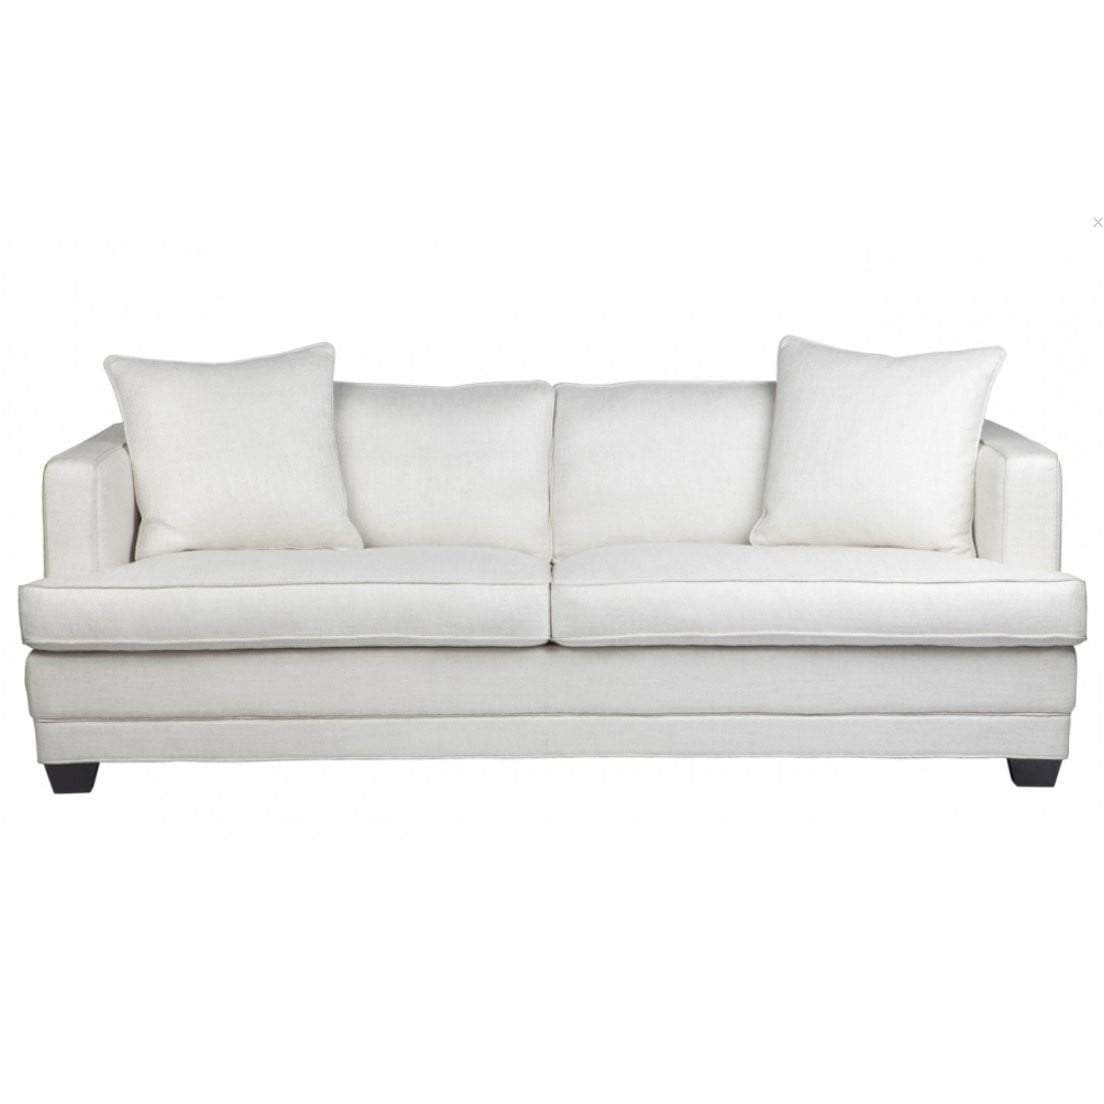 Darling Sofa - 3 Seater Natural